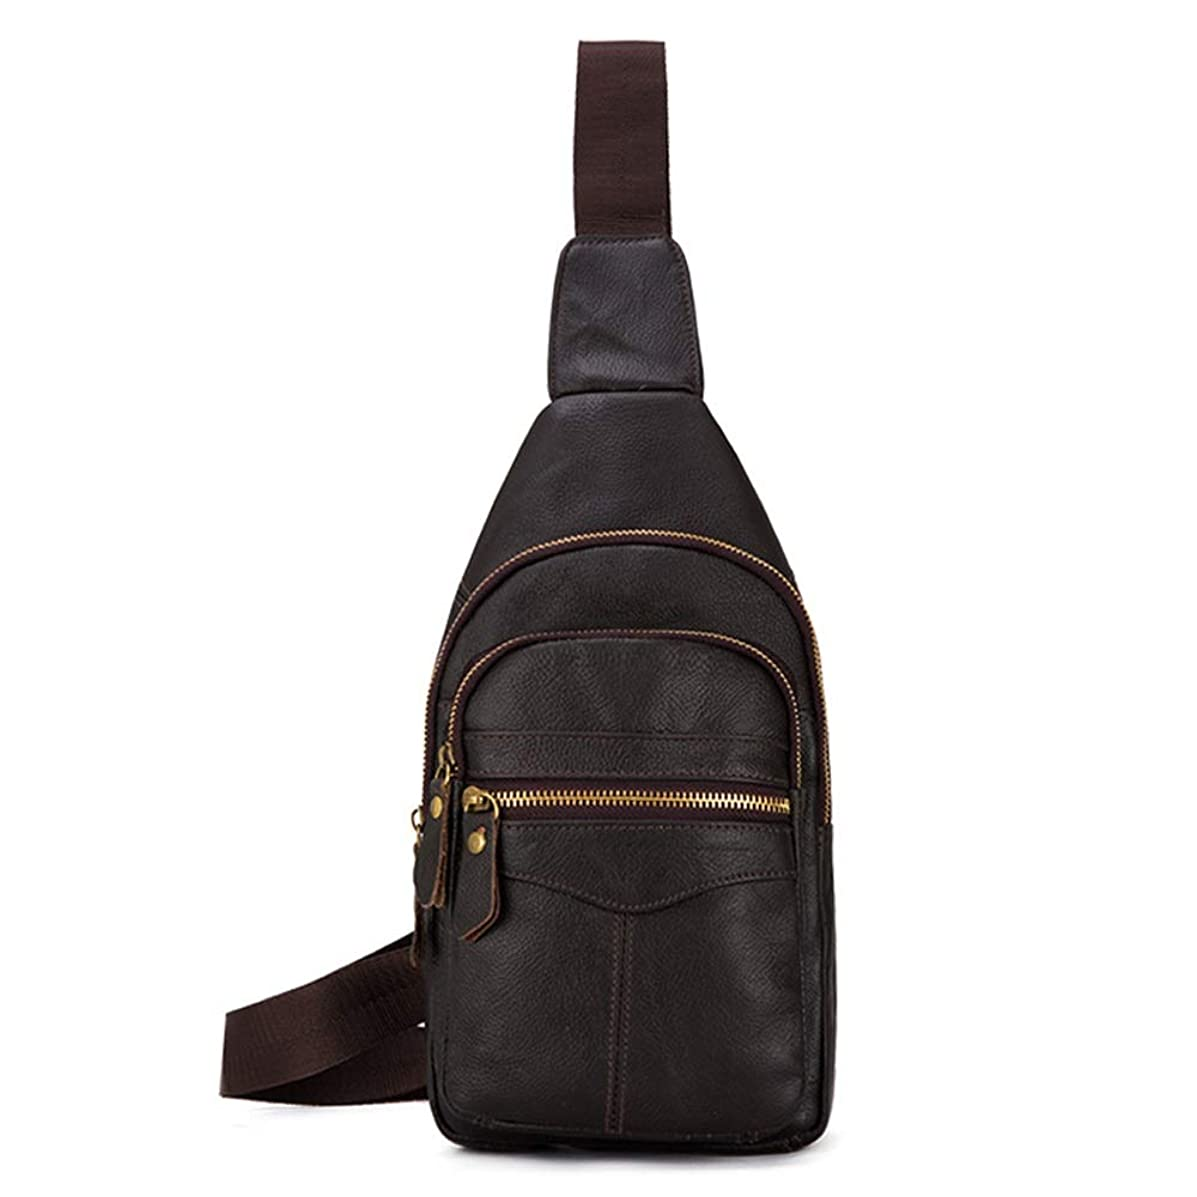 NY-close Men's Chest Bag, Shoulder Bag Leather Men's Chest Bag Messenger Bag Hanging Bag, Waterproof Leisure Messenger Bag Outdoor Shoulder Strap Chest Bag, Suitable for Outdoor Running Hiking